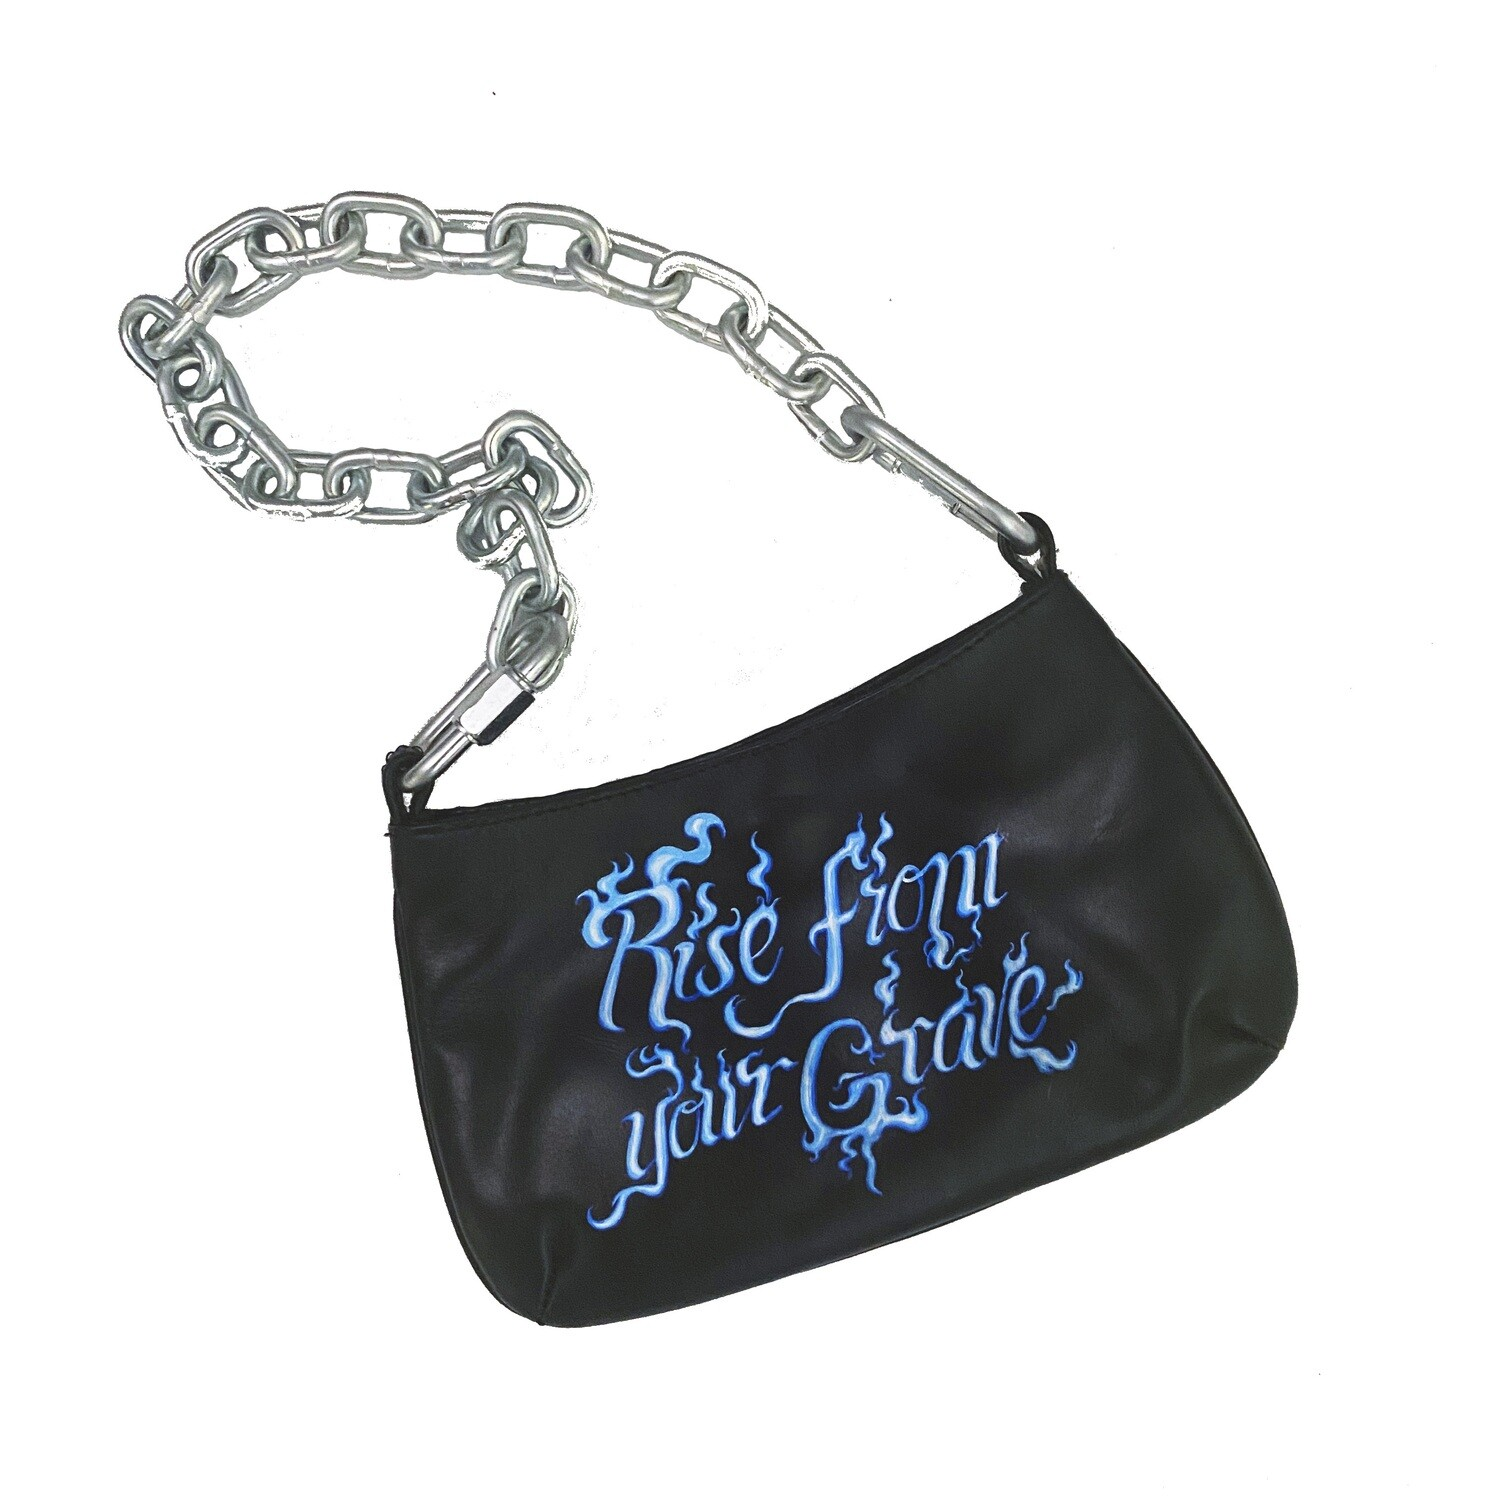 RISE FROM YOUR GRAVE BAG